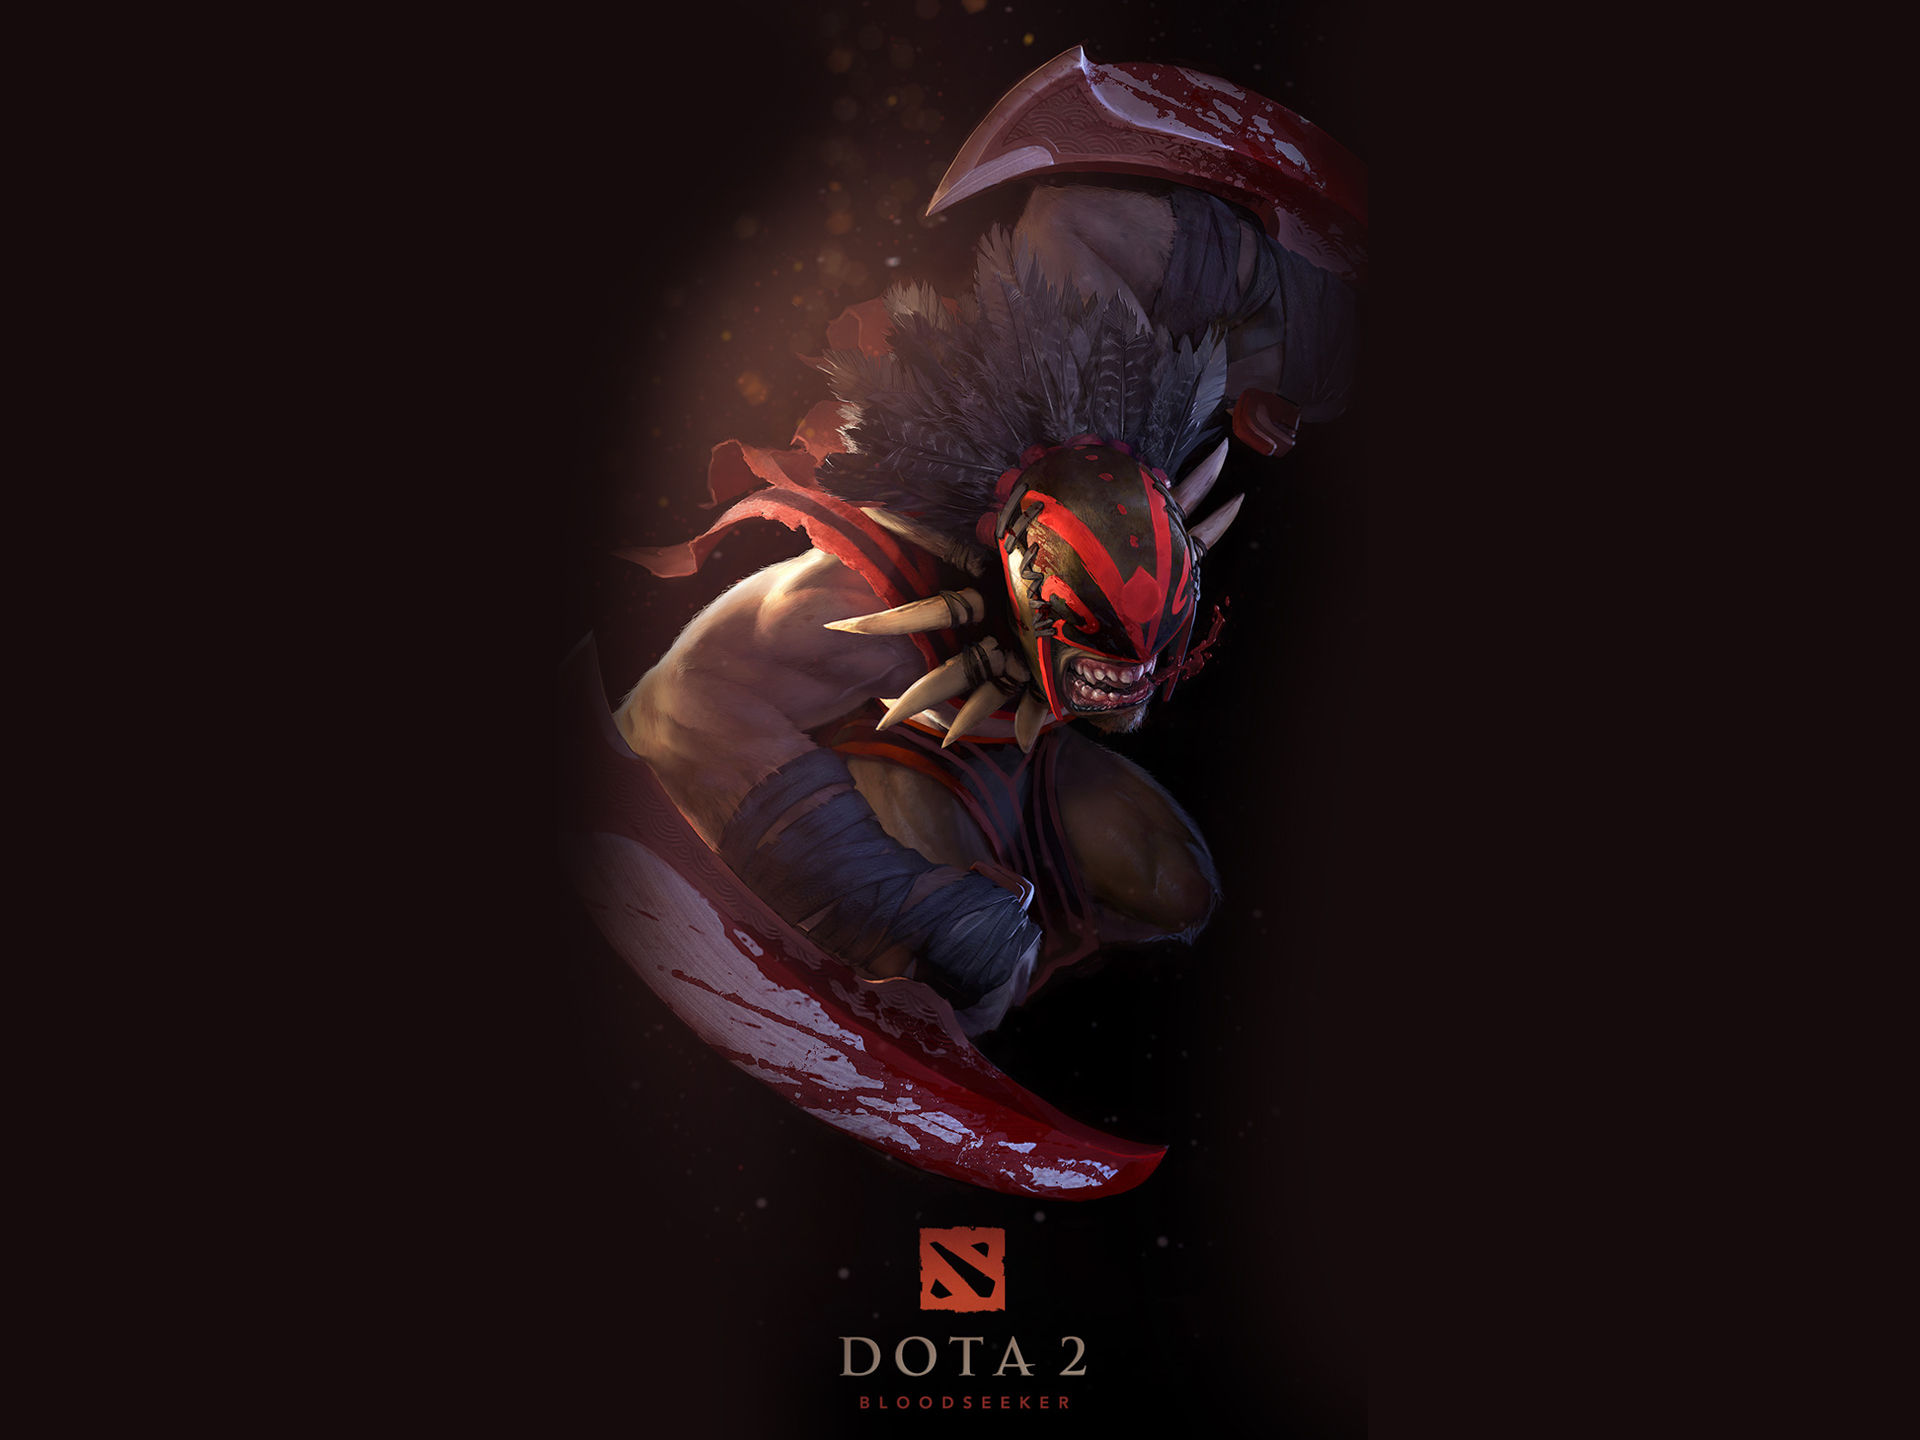 dota 2 bloodseeker wallpapers dota 2 bloodseeker stock photos